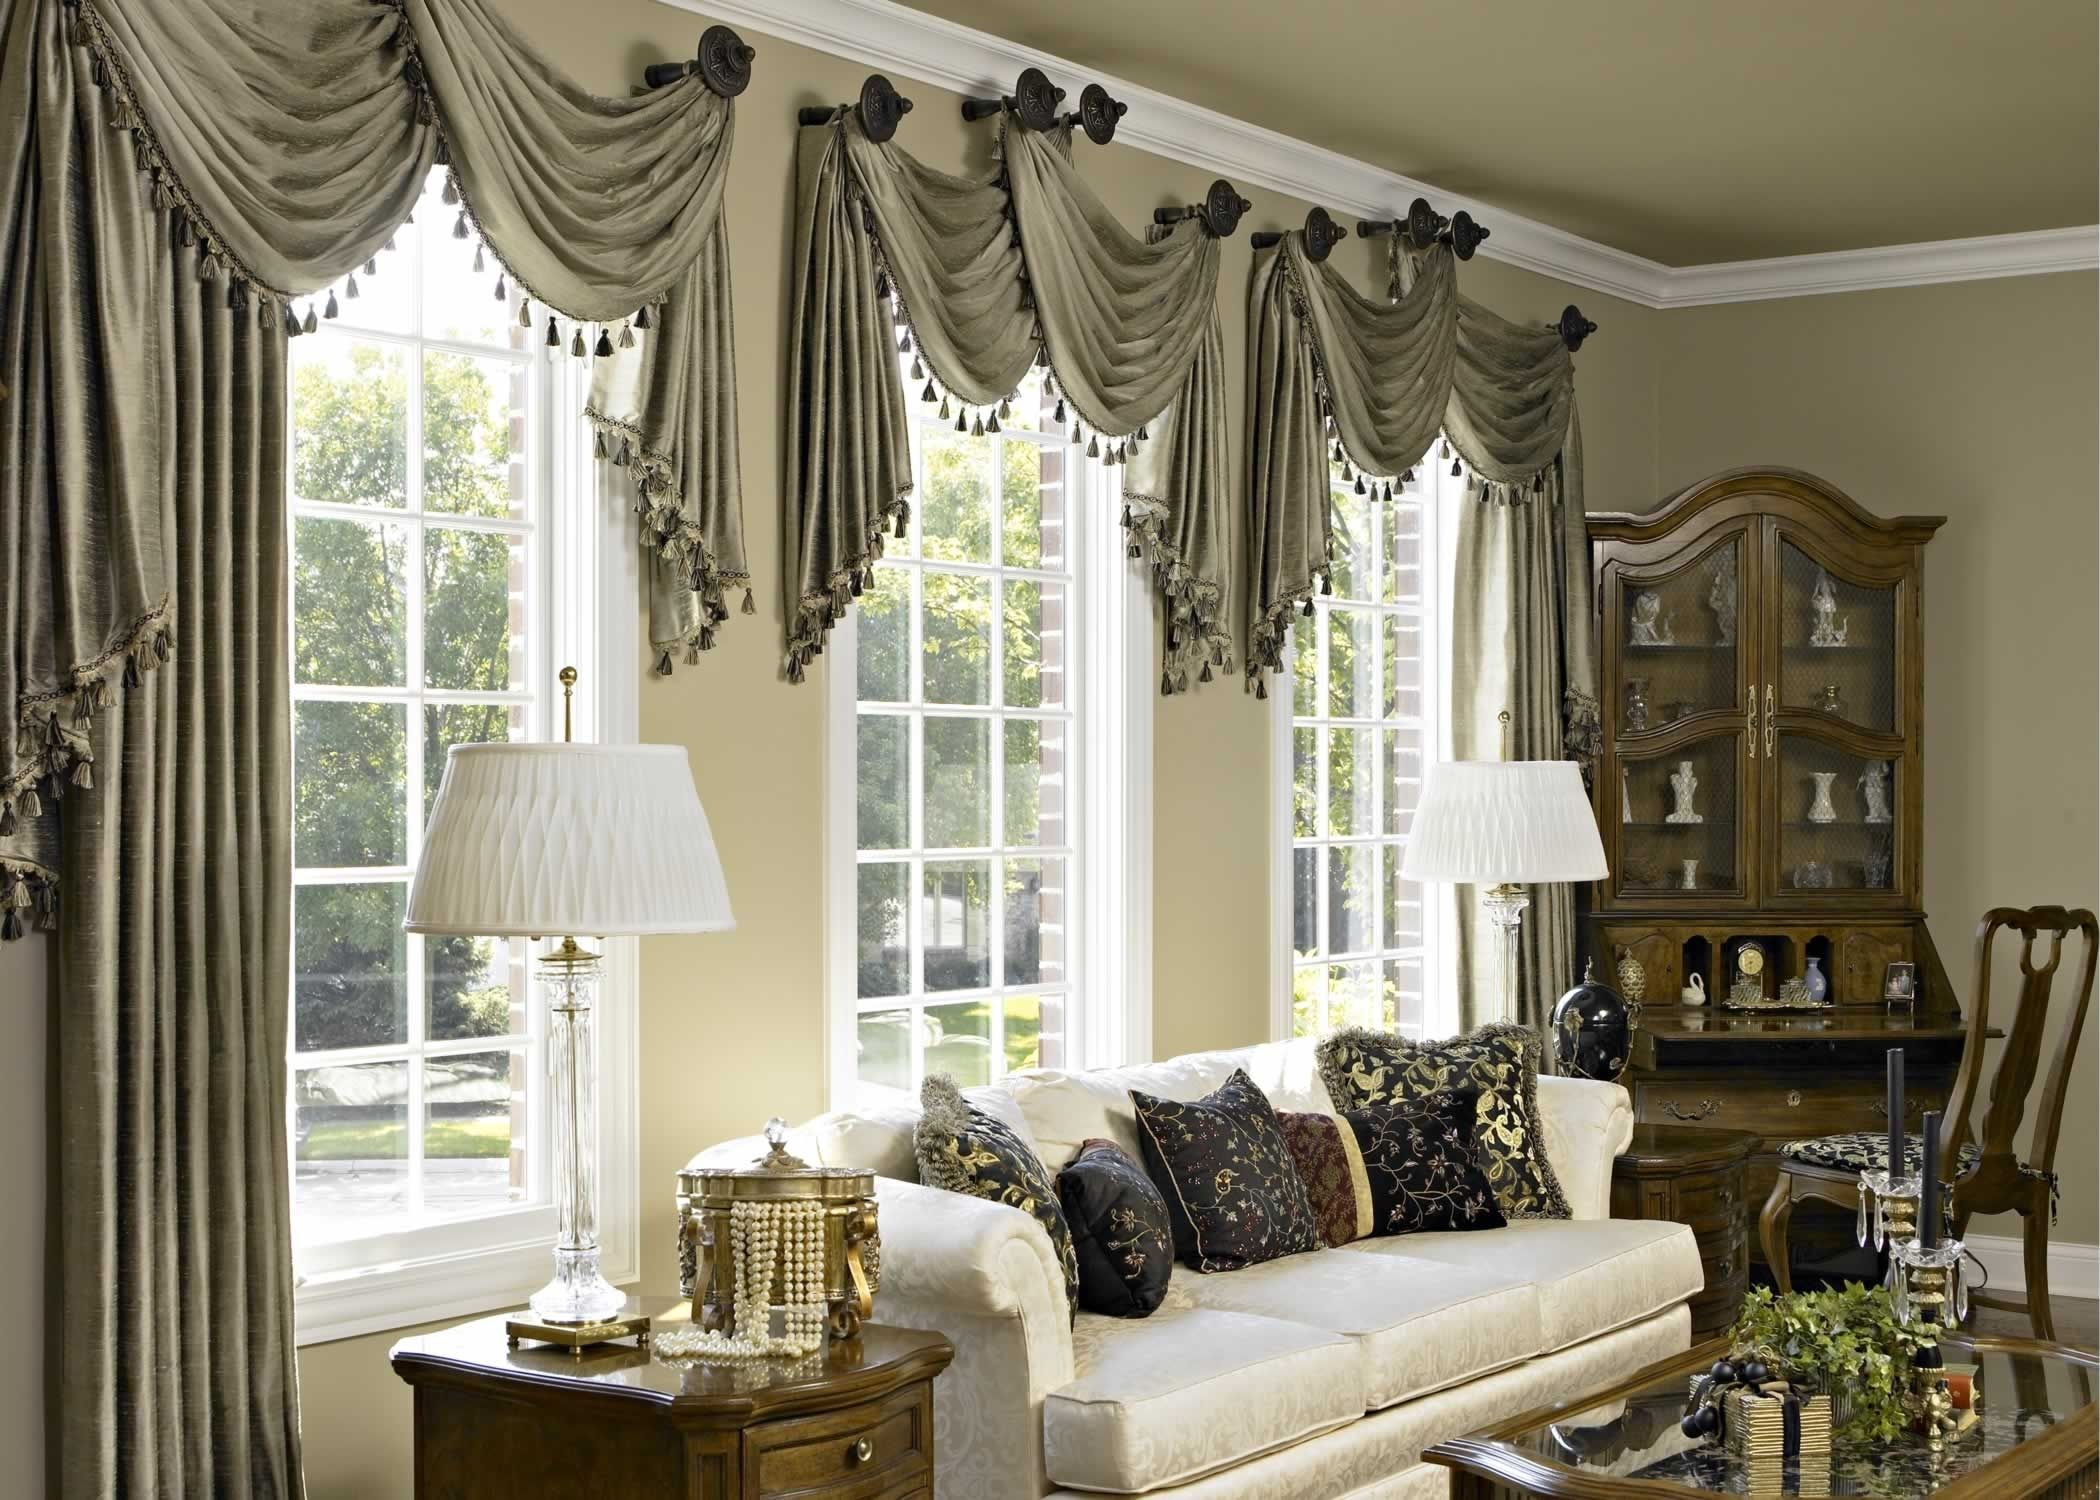 living room window valance ideas%0A Pretty Curtains For Living Room